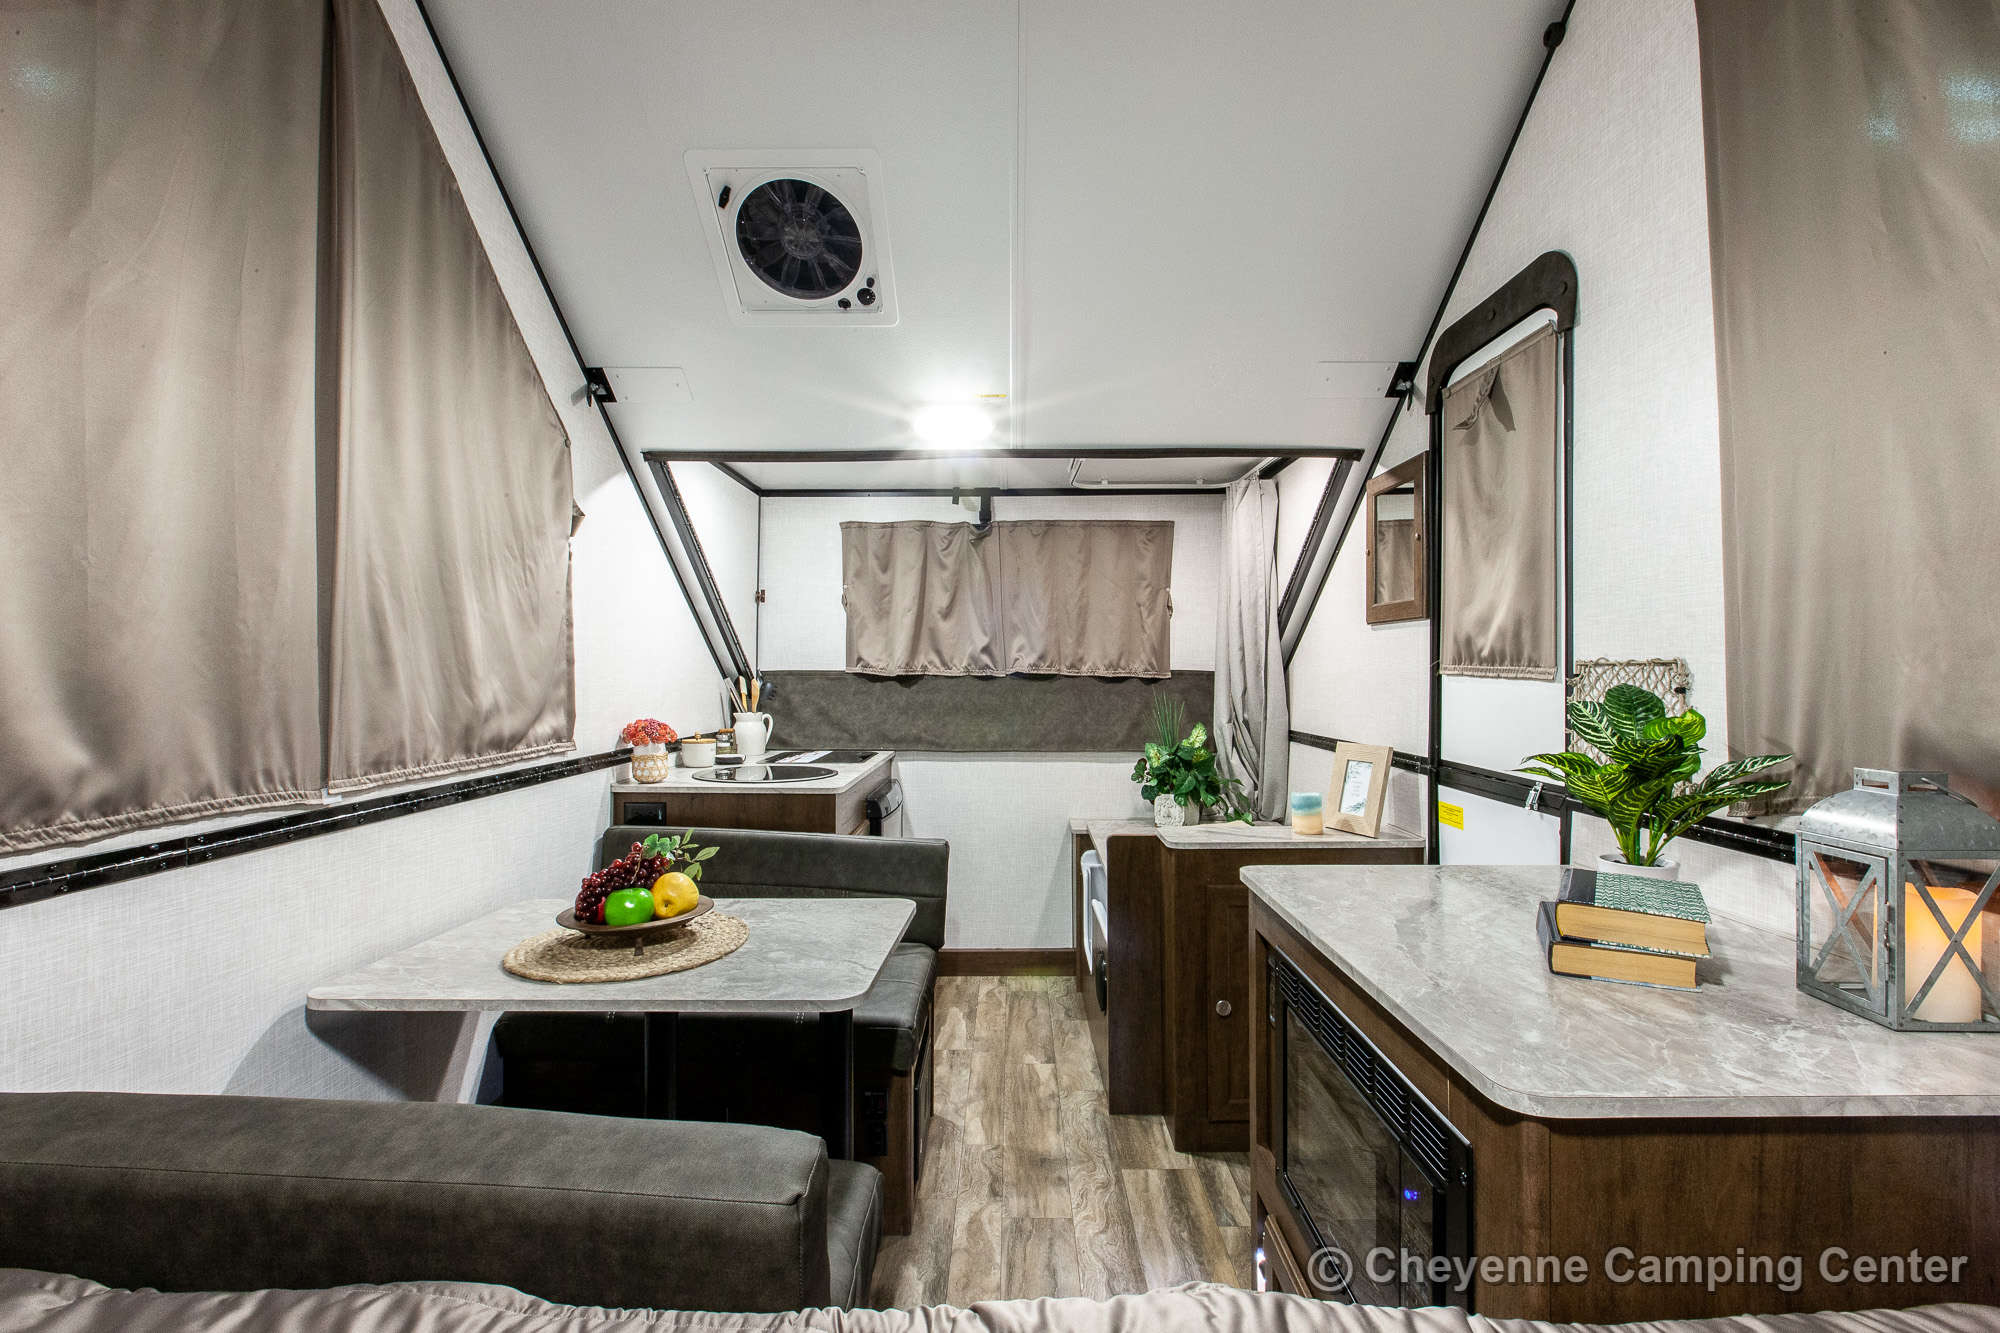 2021 Forest River Flagstaff Hard Side T21DMHW Folding Camper Interior Image